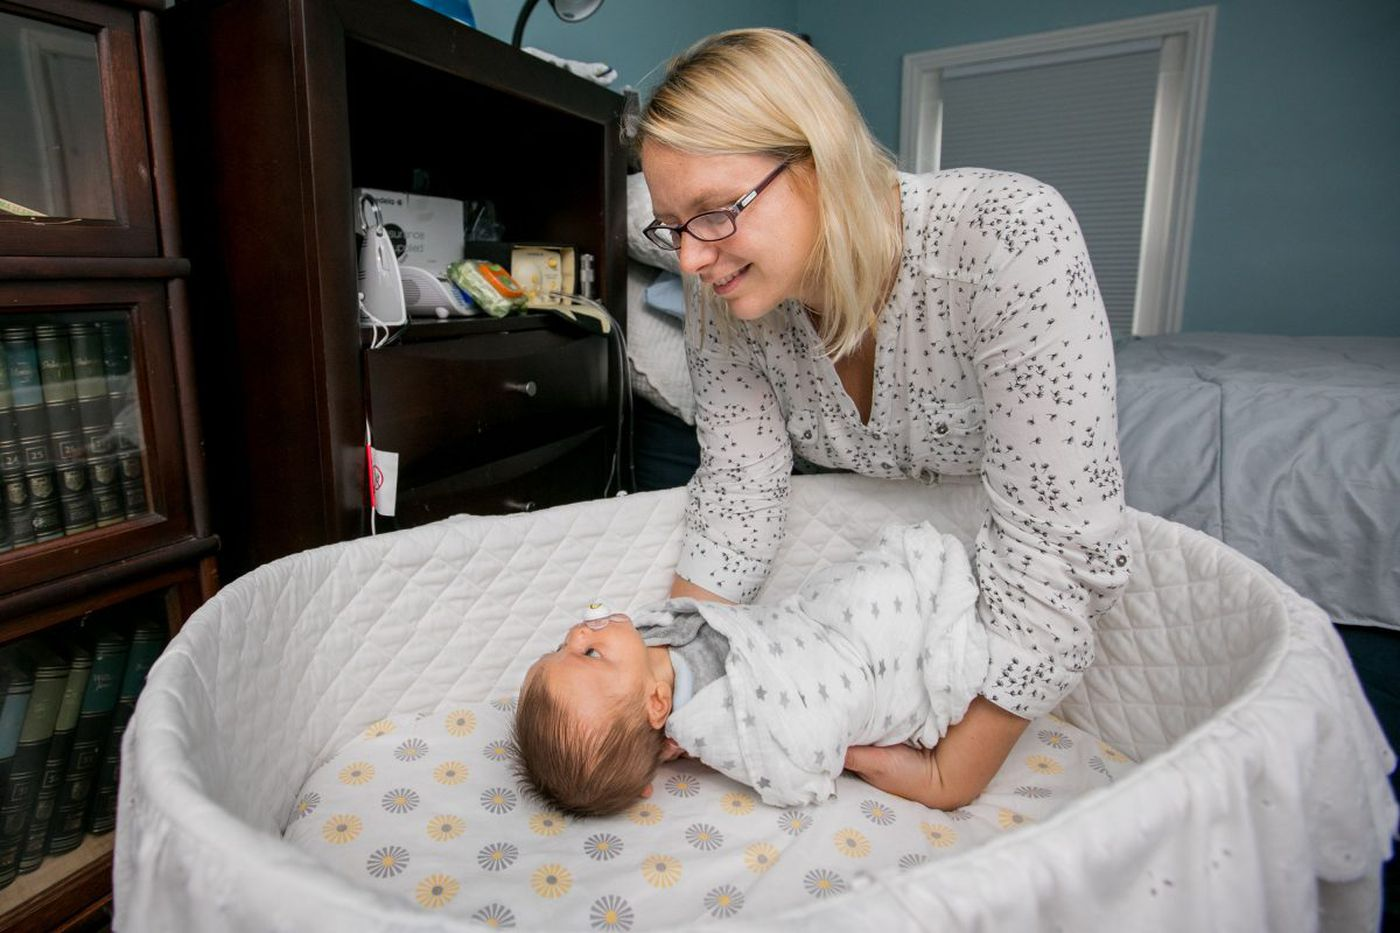 Penn State study questions longer room sharing for newborns and parents